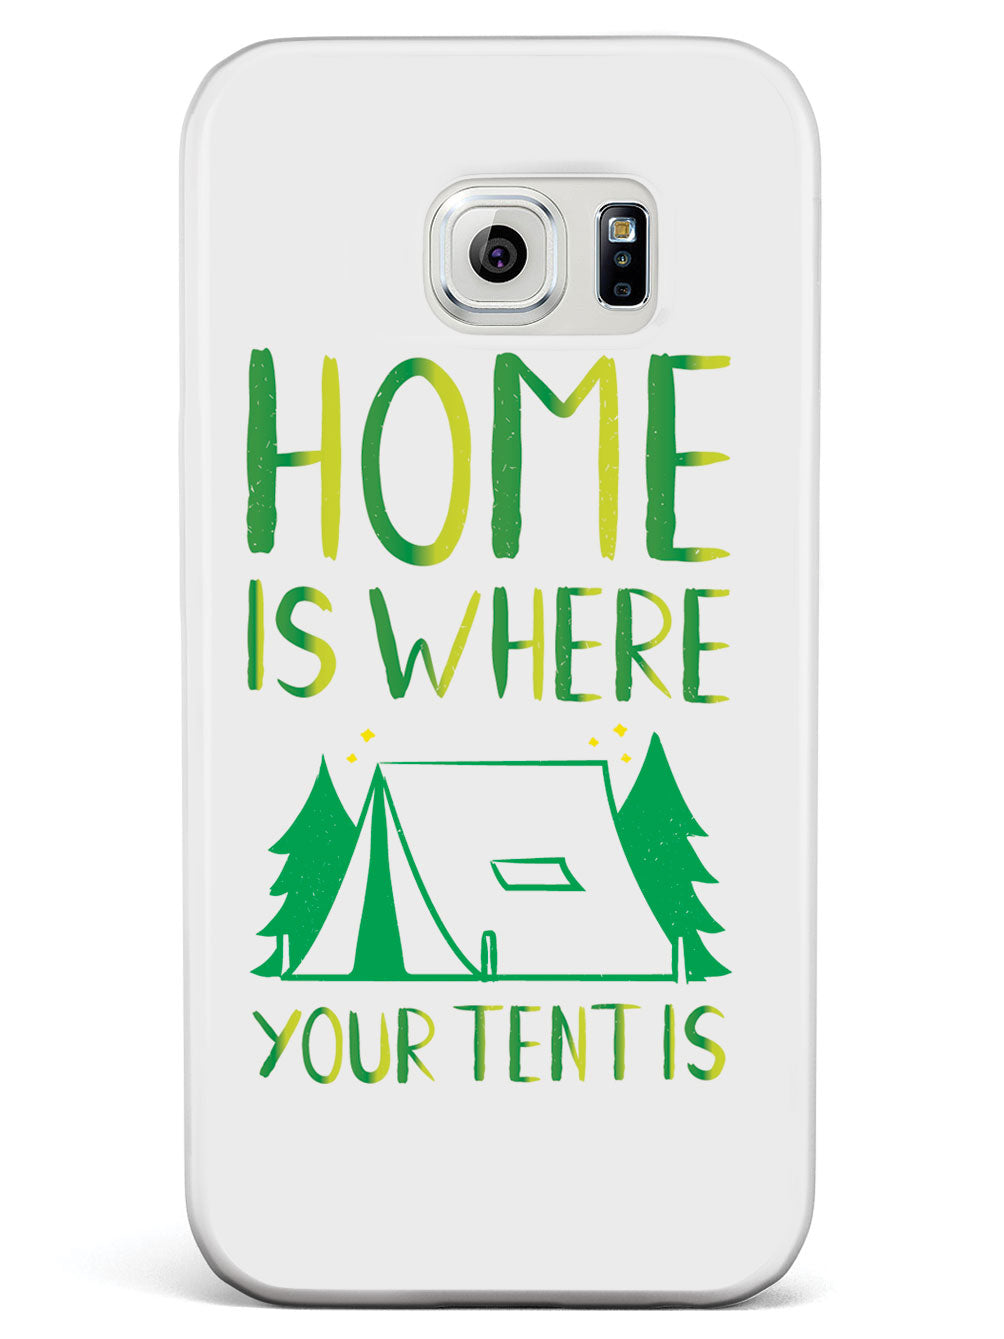 Home Is Where Your Tent Is - White Case